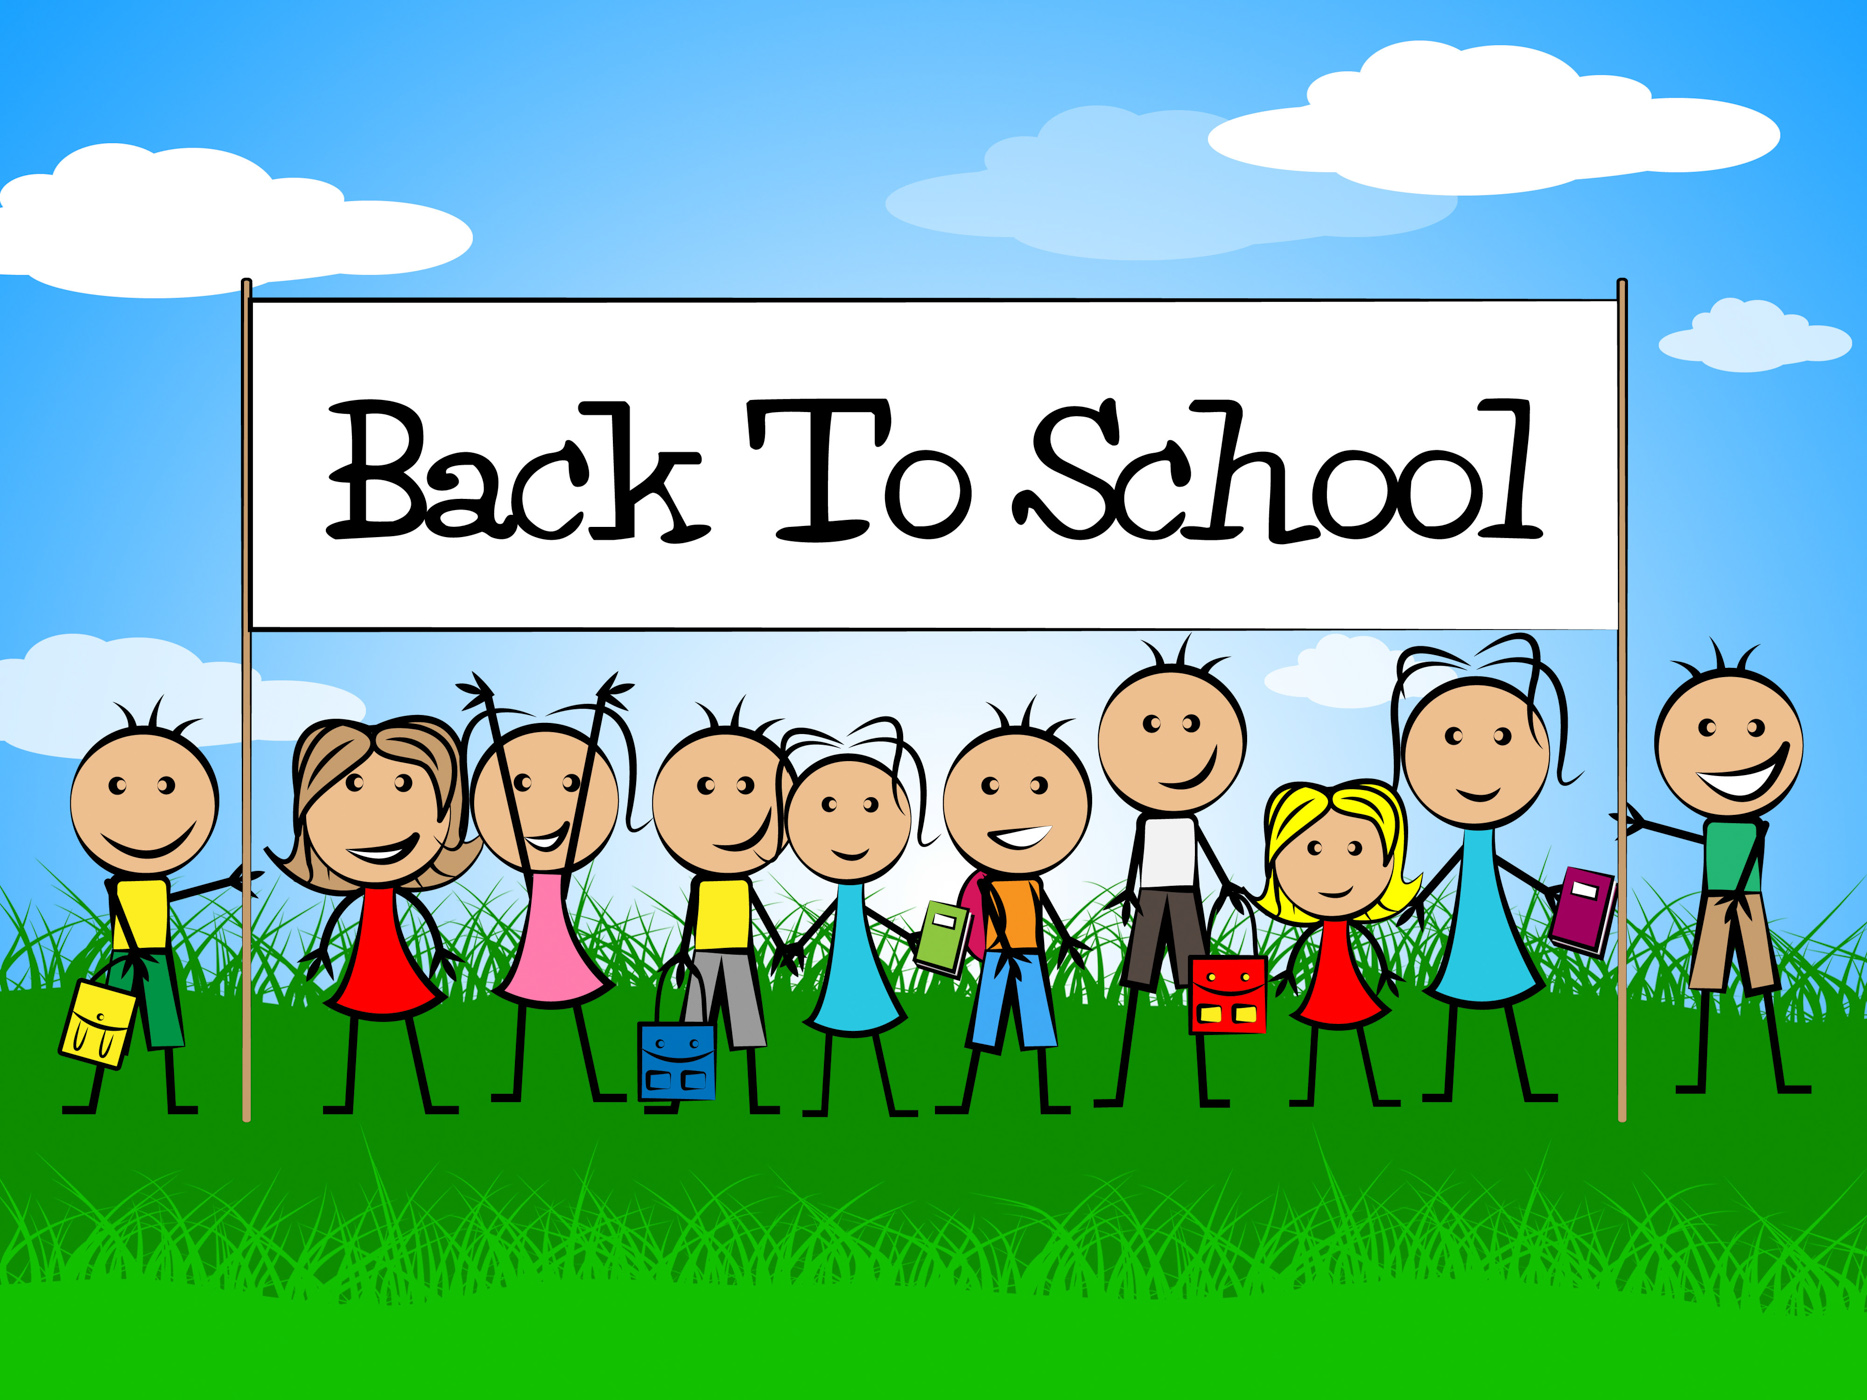 Back To School Means Youths Educate And Education, Backtoschool, School, Youth, Youngsters, HQ Photo